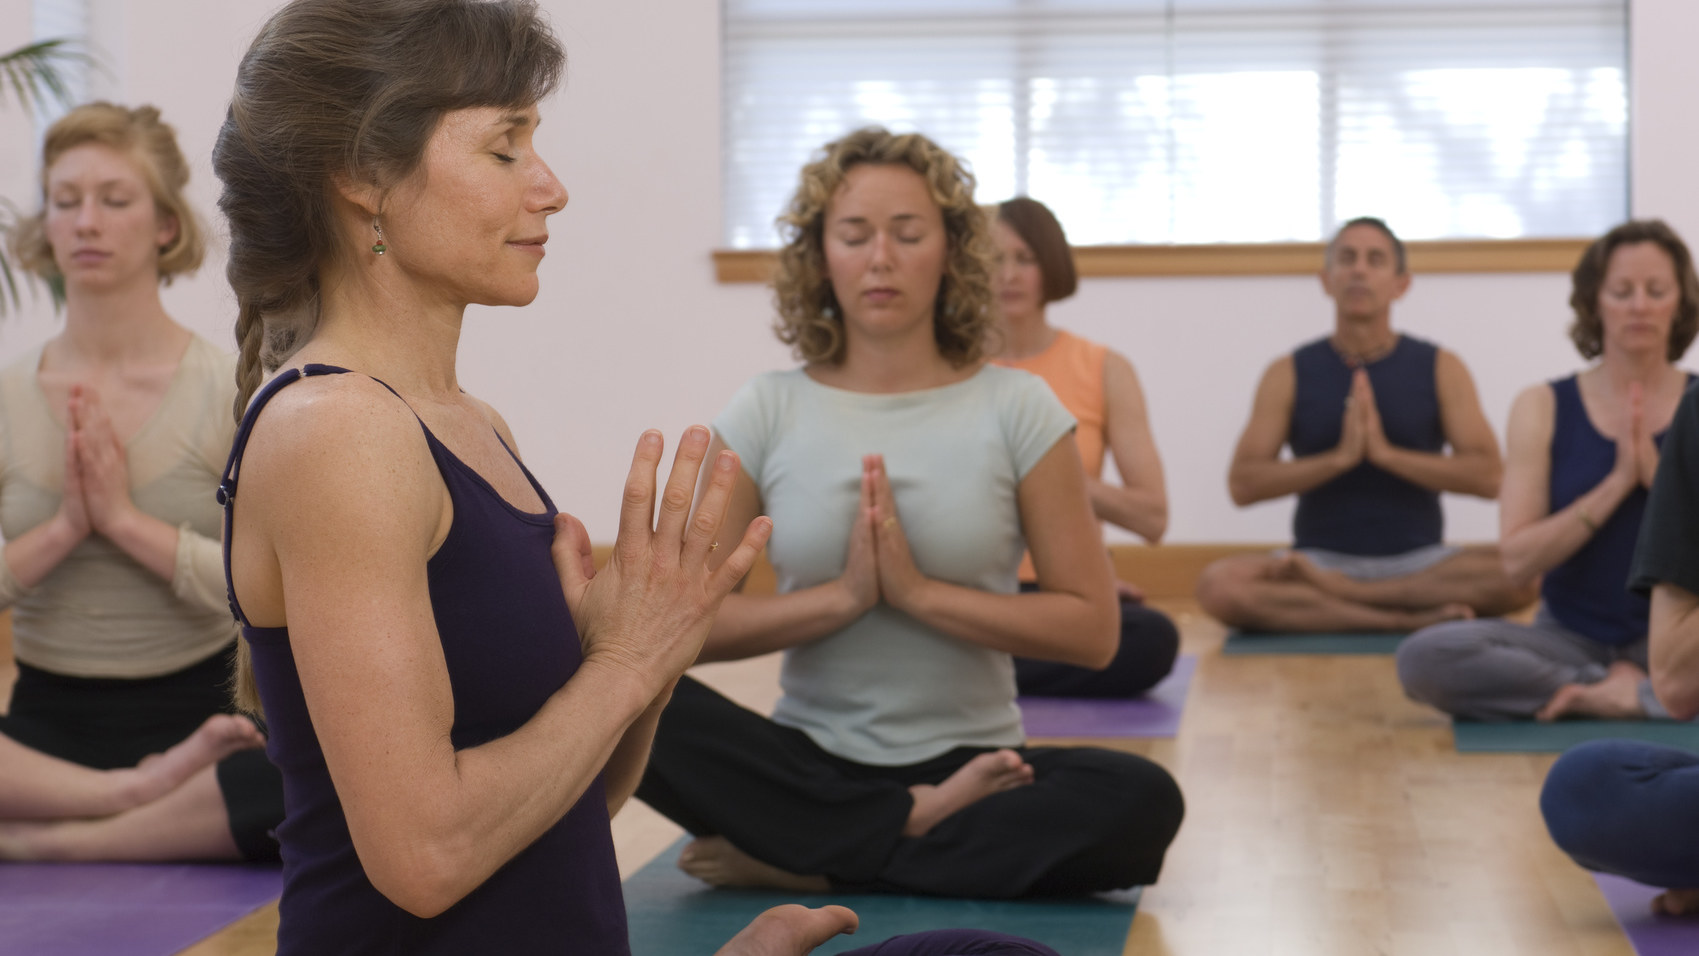 Meditation, quiet time, self-care, mindfulness, calming anxiety, yoga and cancer